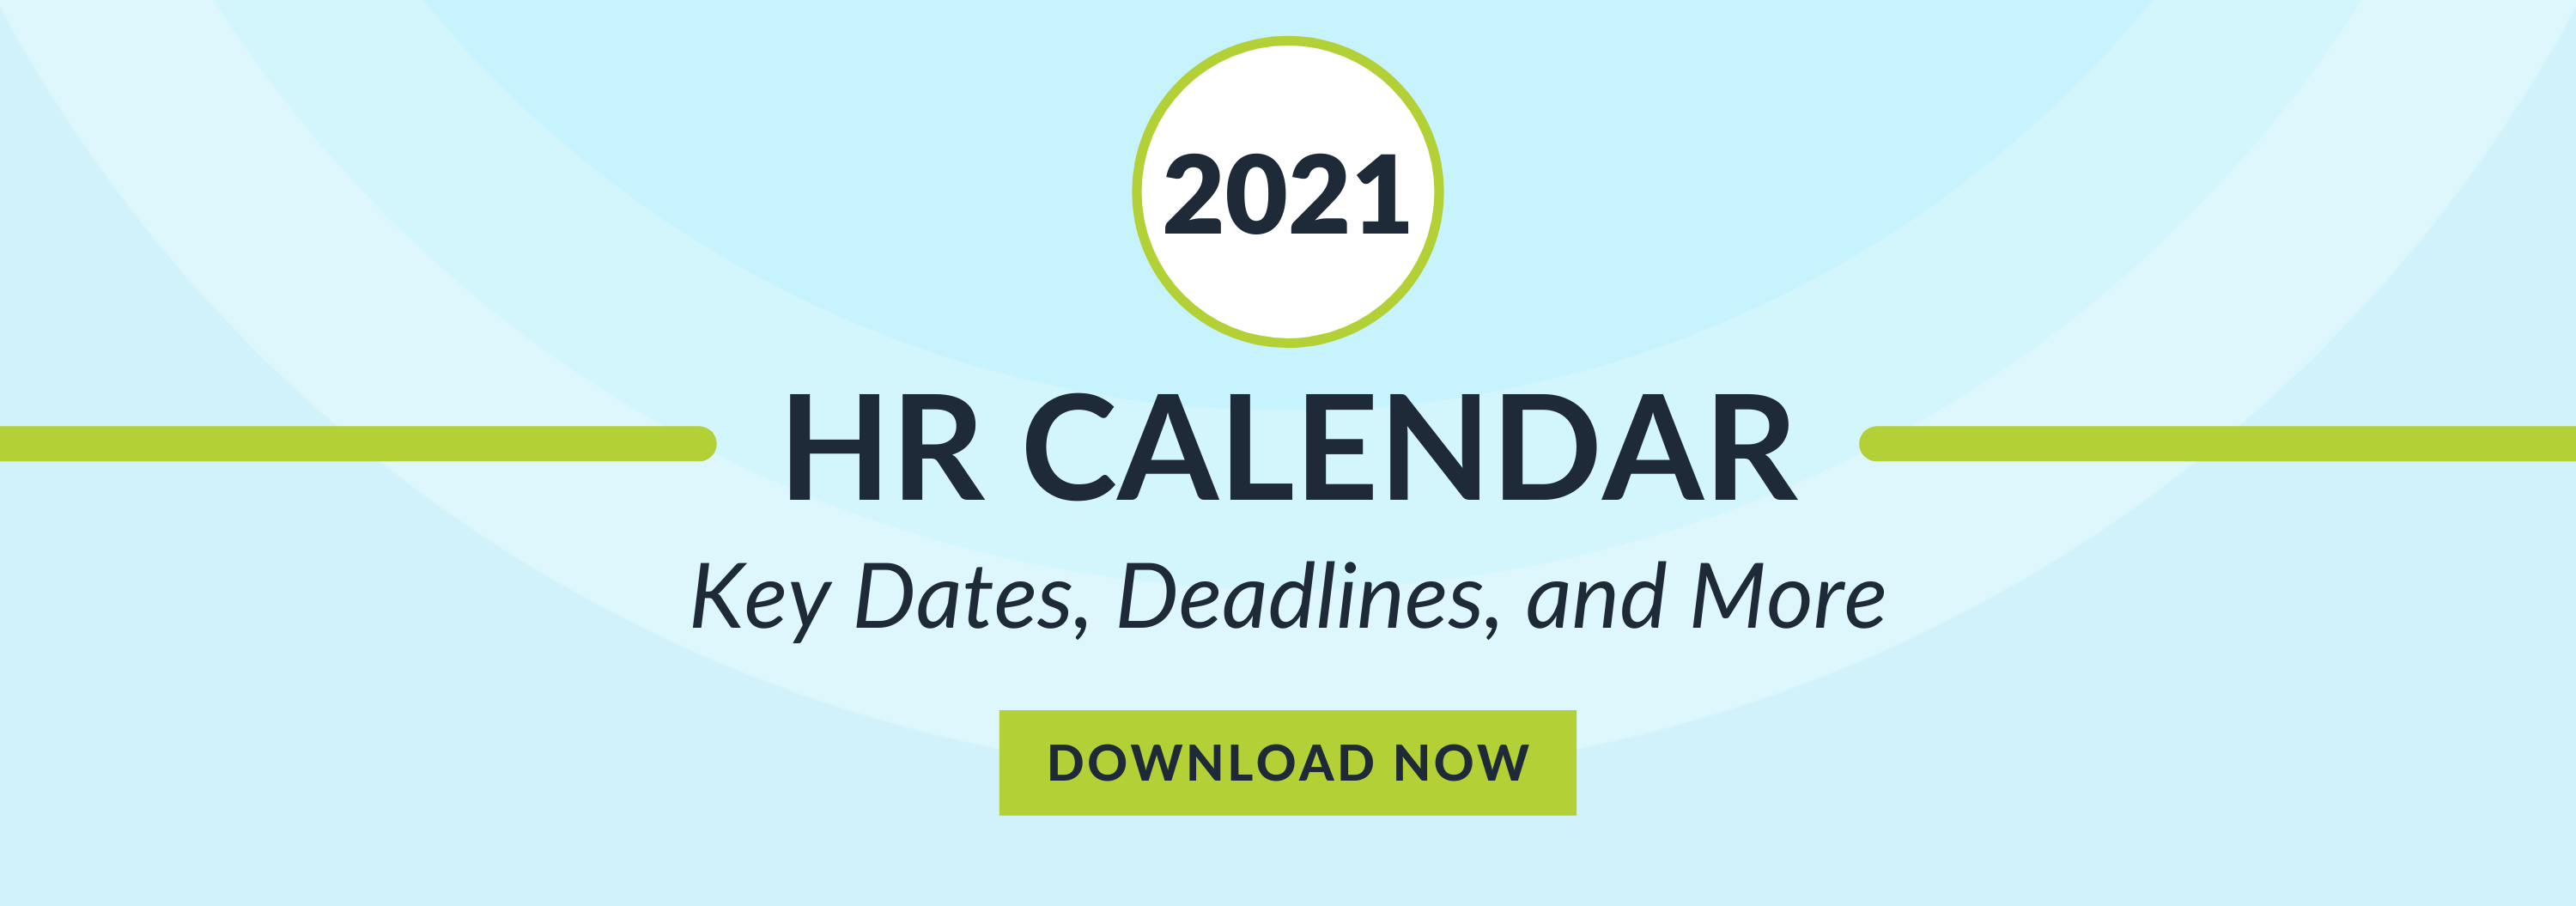 2021 HR Calendar Call to Action